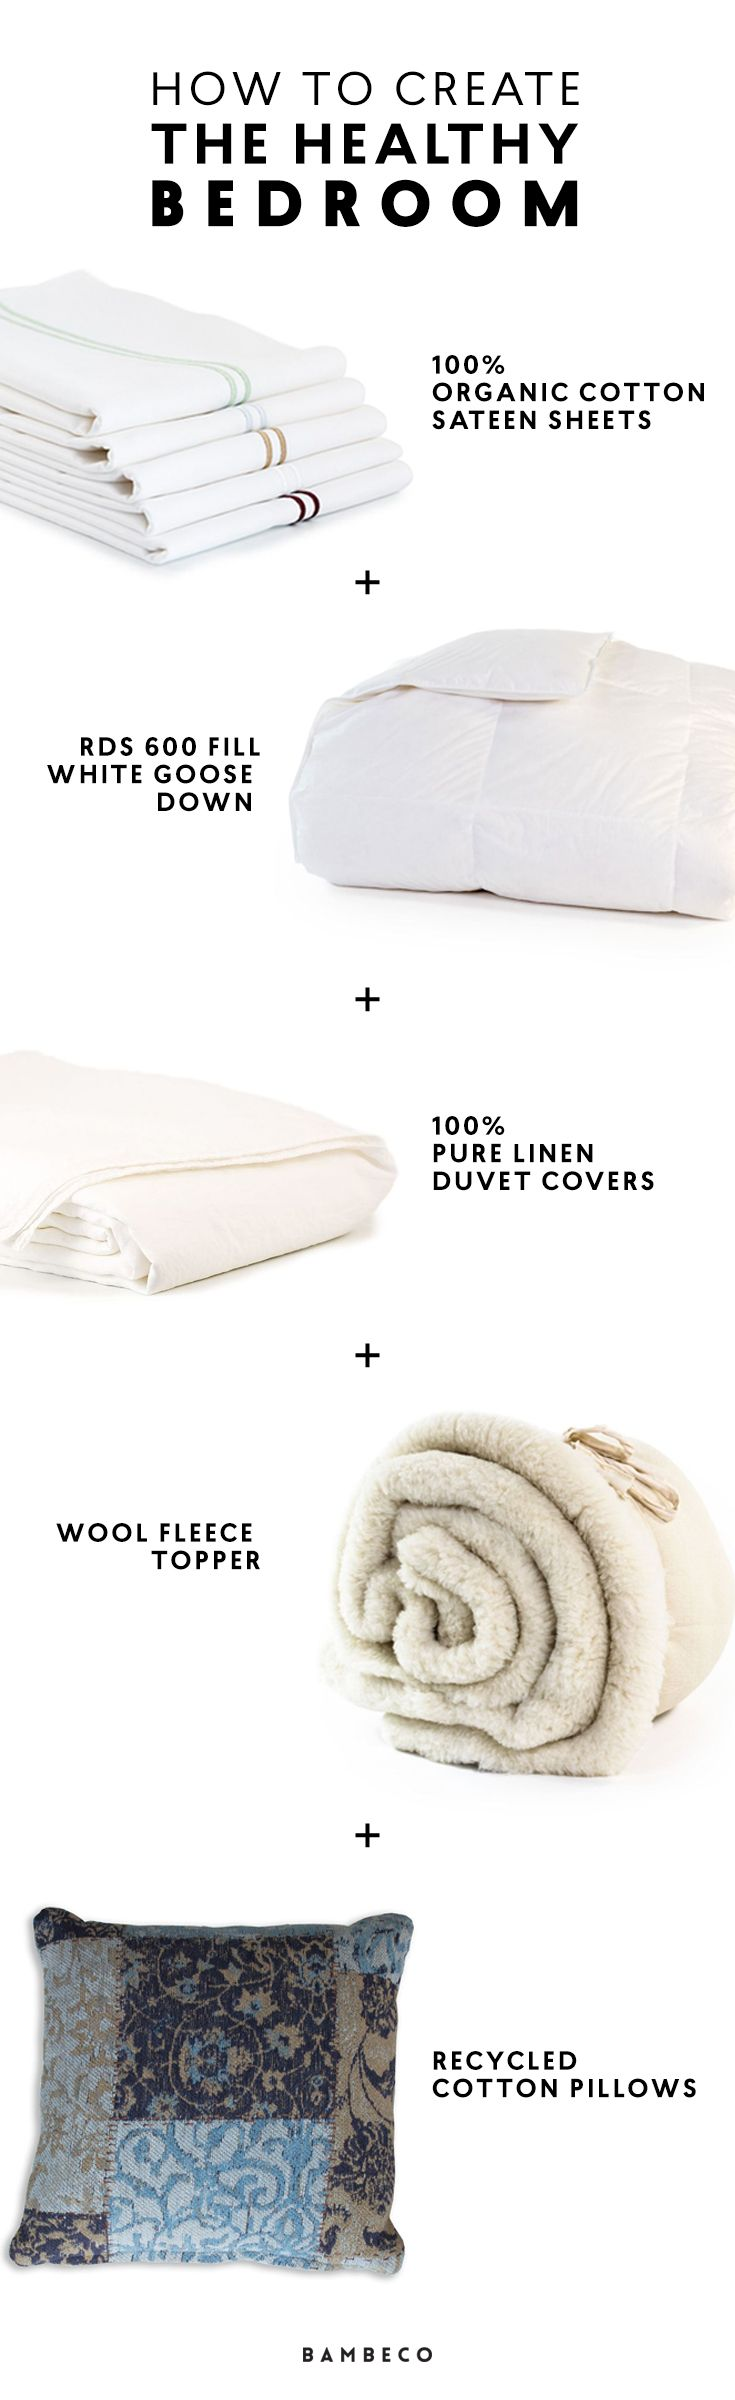 How to create the Healthy Bedroom: Layer your bed in organic cotton sheets, RDS 600 fill white goose down comforter, linen duvet cover, wool fleece topper and recycled cotton pillows. Sleep well knowing your free of toxins!